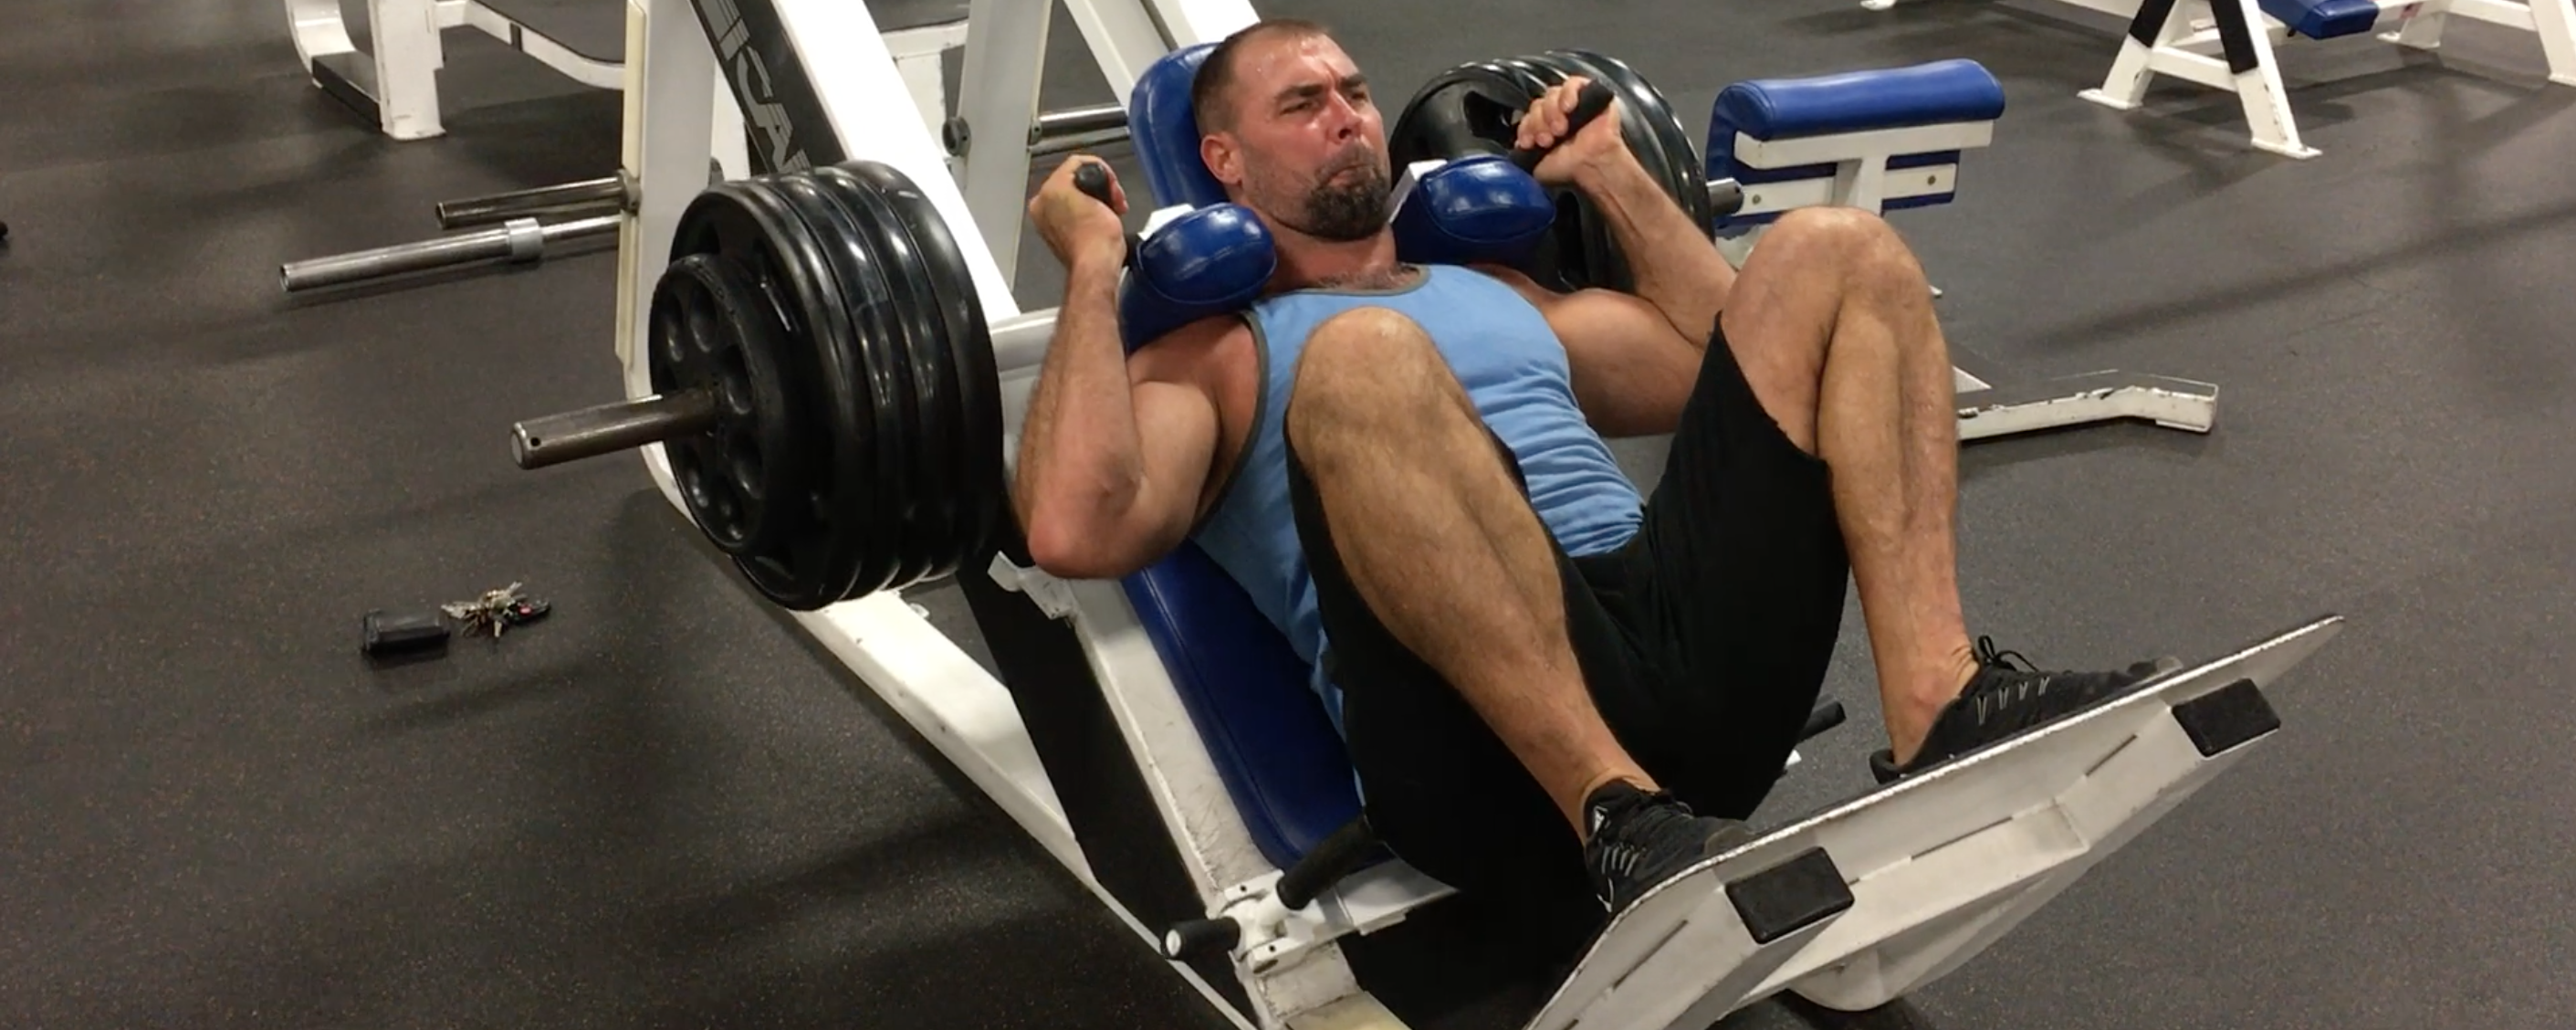 The No Barbell Experiment on Squat and Deadlift and Hip Thrust Strength